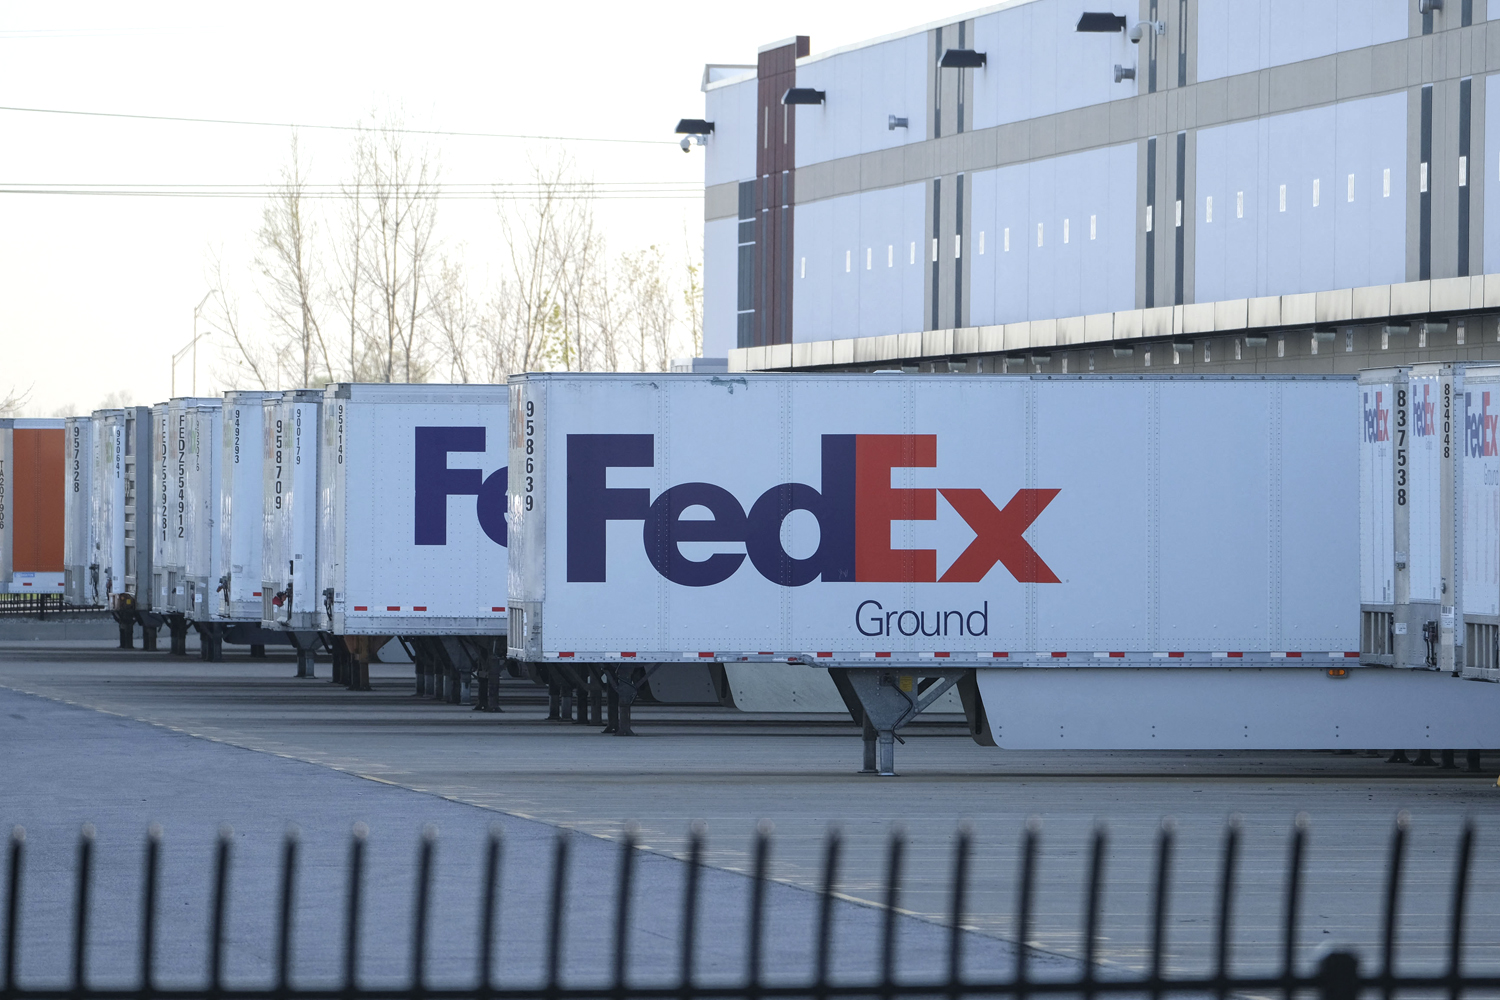 mass shooting at a FedEx facility in Indianapolis